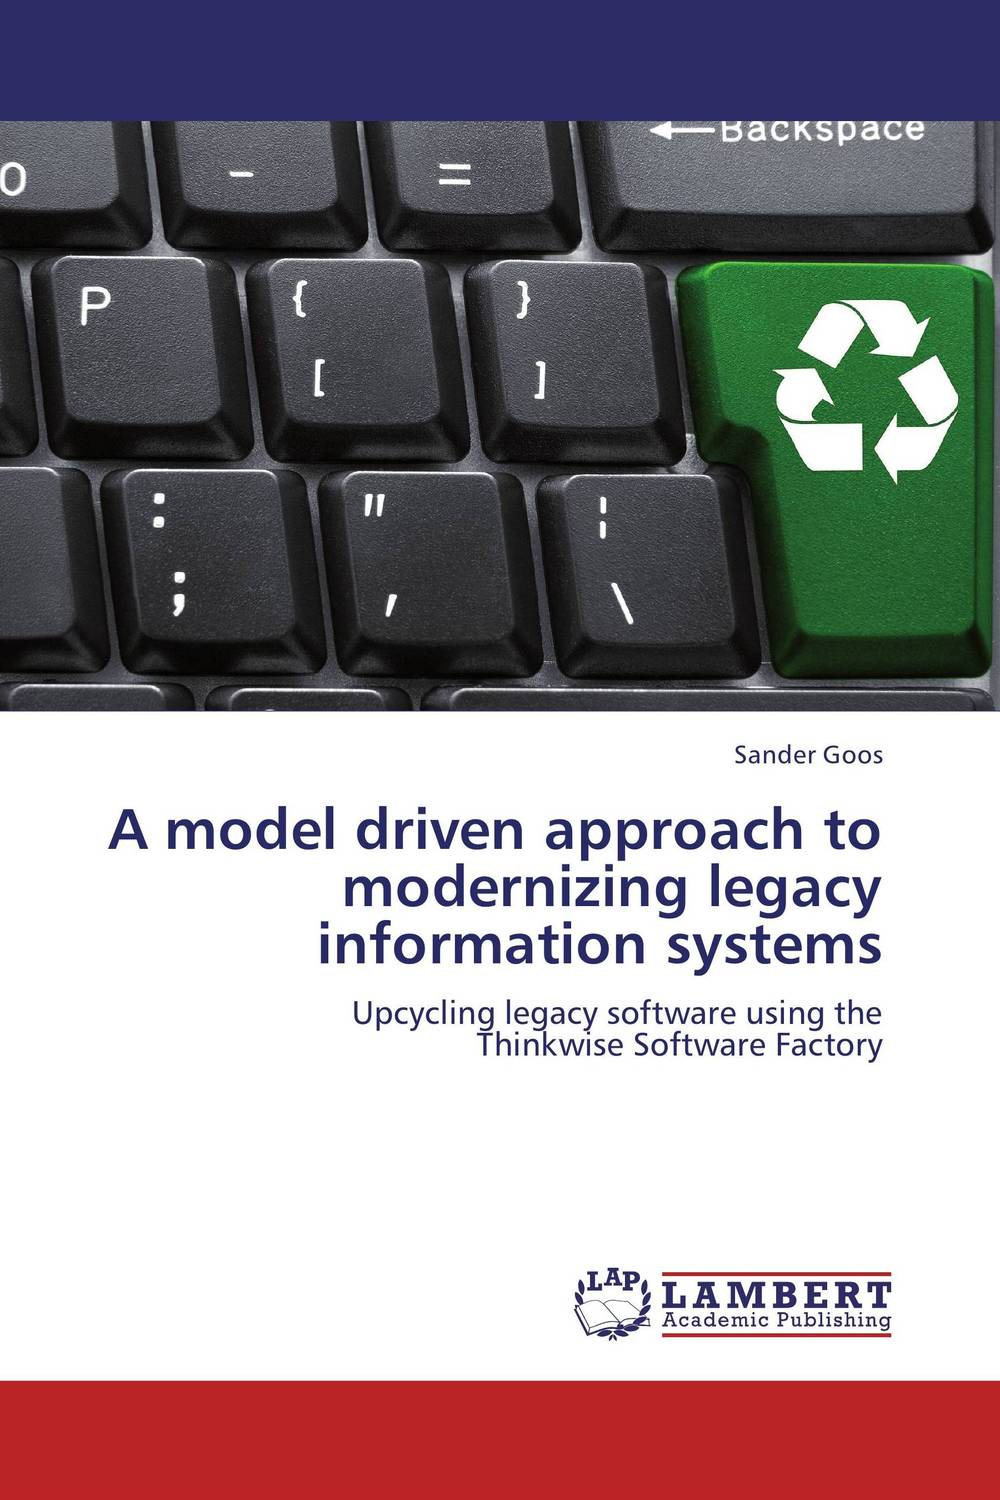 A model driven approach to modernizing legacy information systems driven to distraction